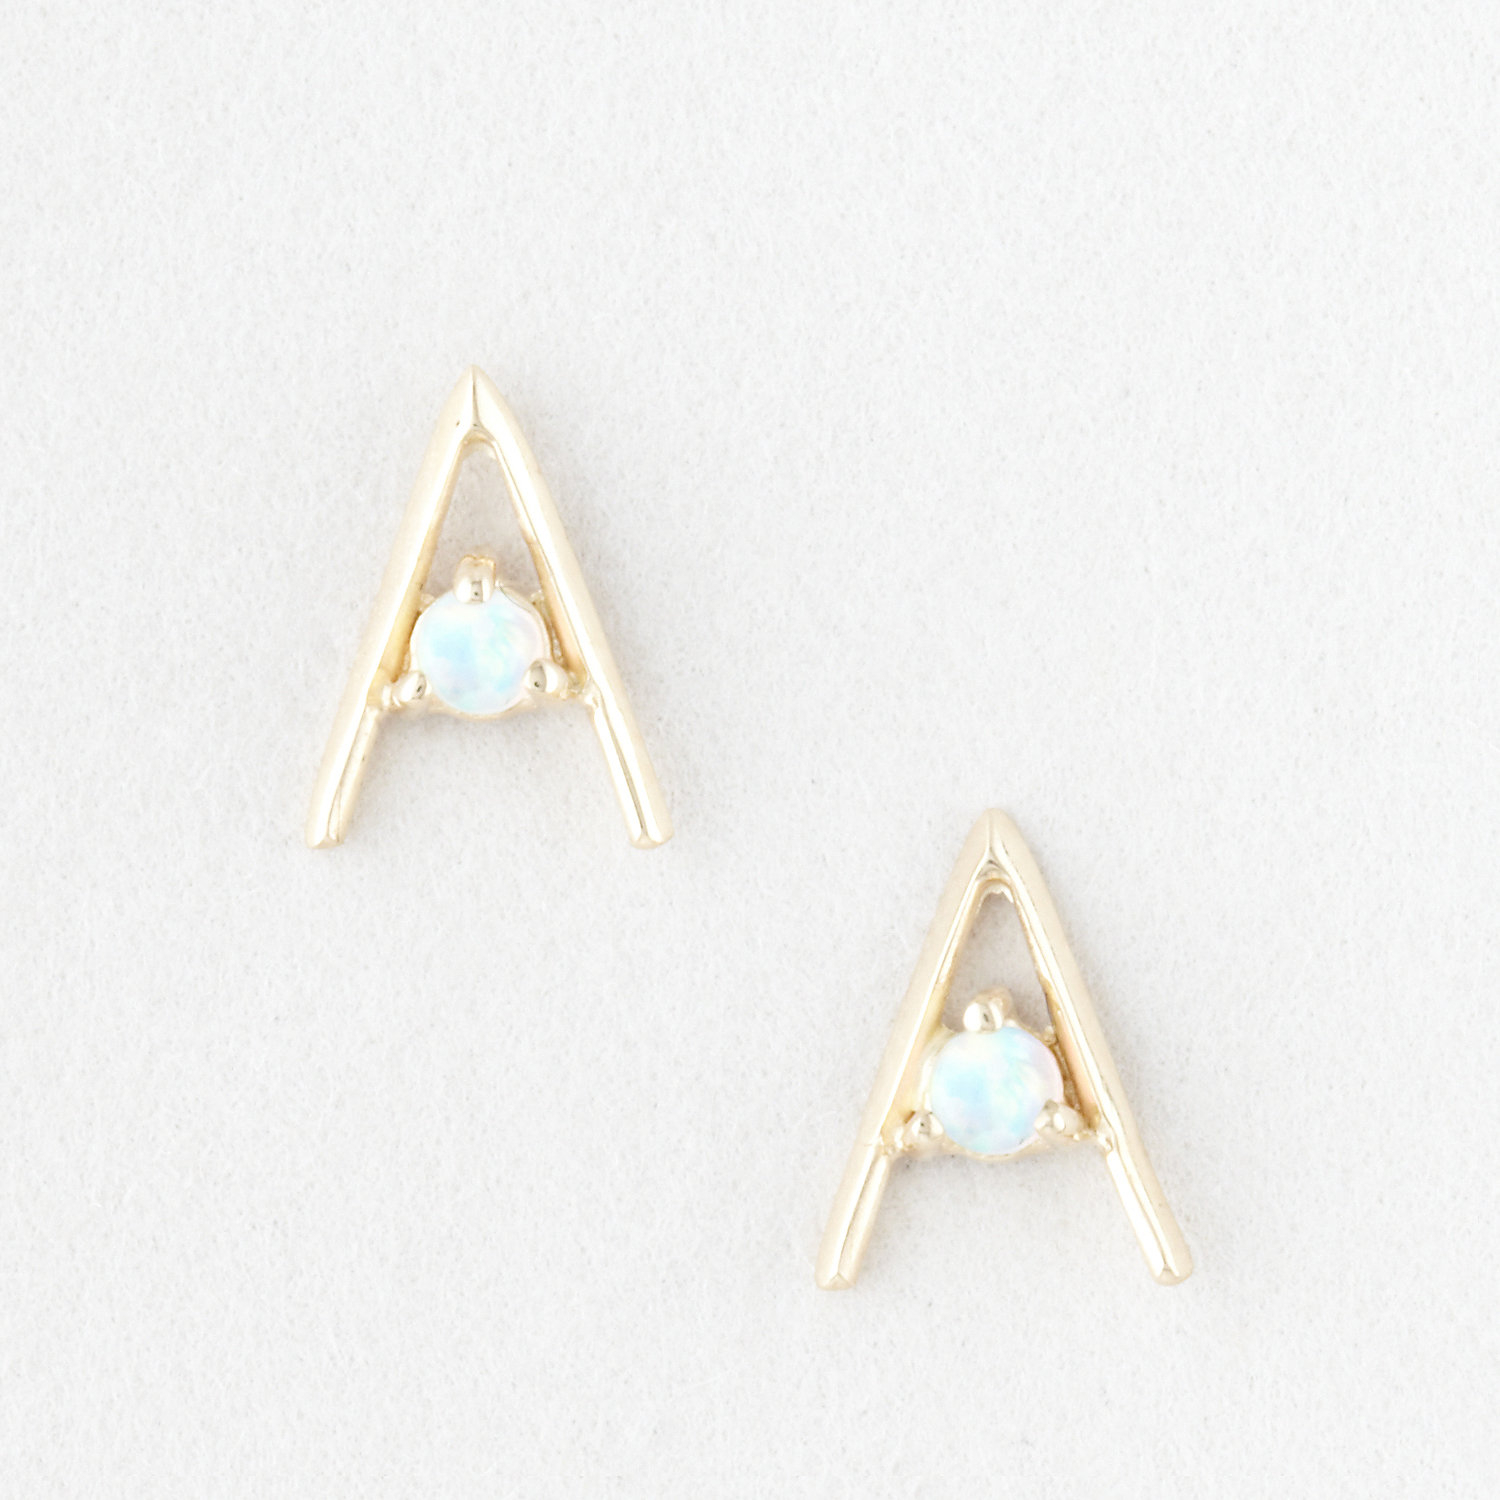 Triangle Earrings: Wwake Triangle Earrings With Small Opals In Gold (YEL GOLD